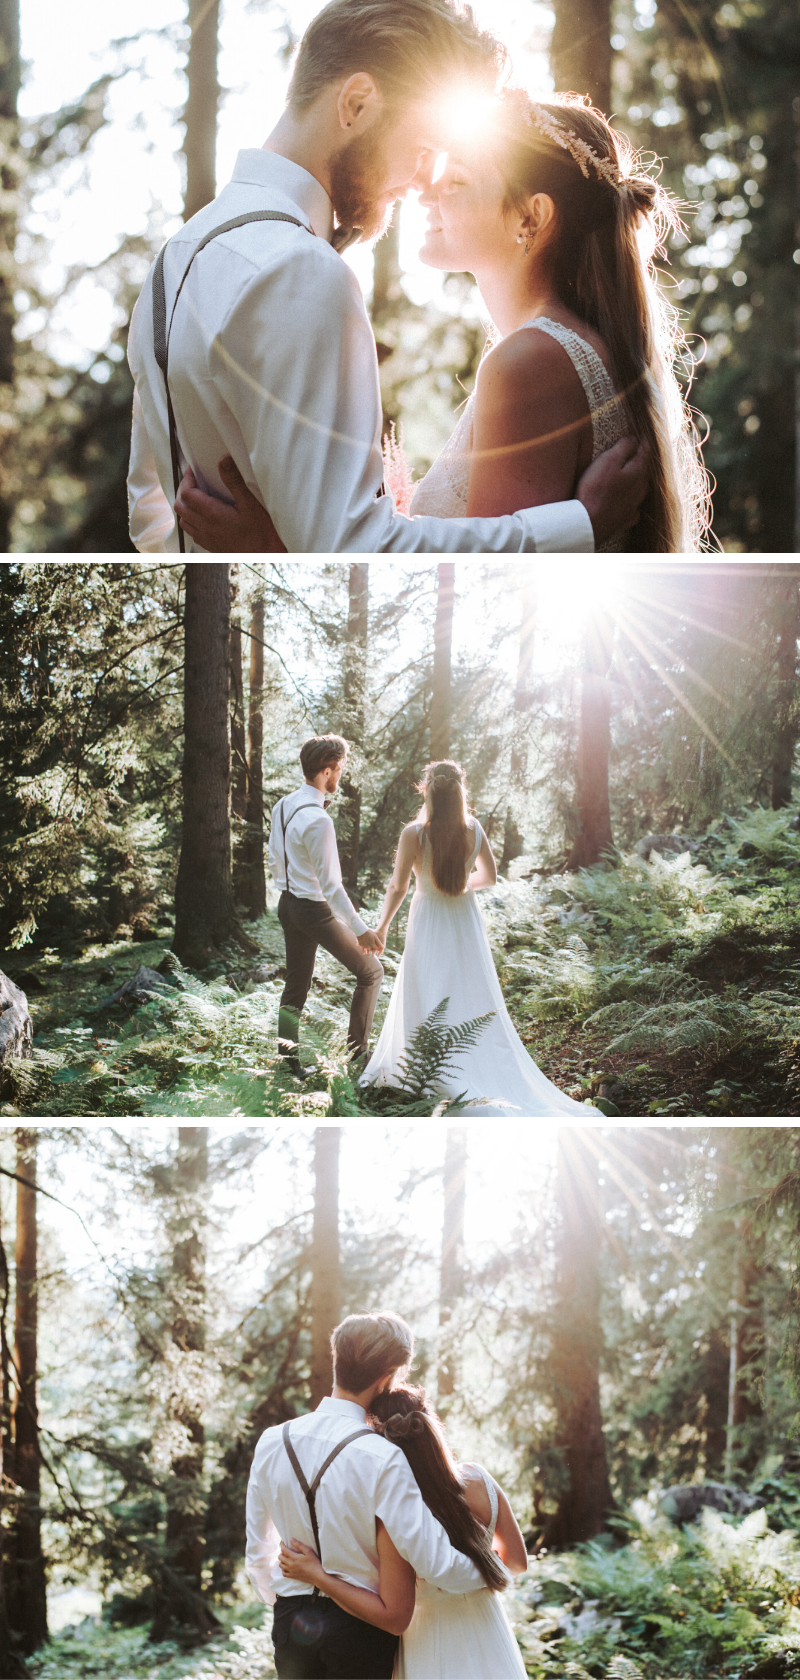 Wildromantisches Elopement Wedding Shooting mit Astilben